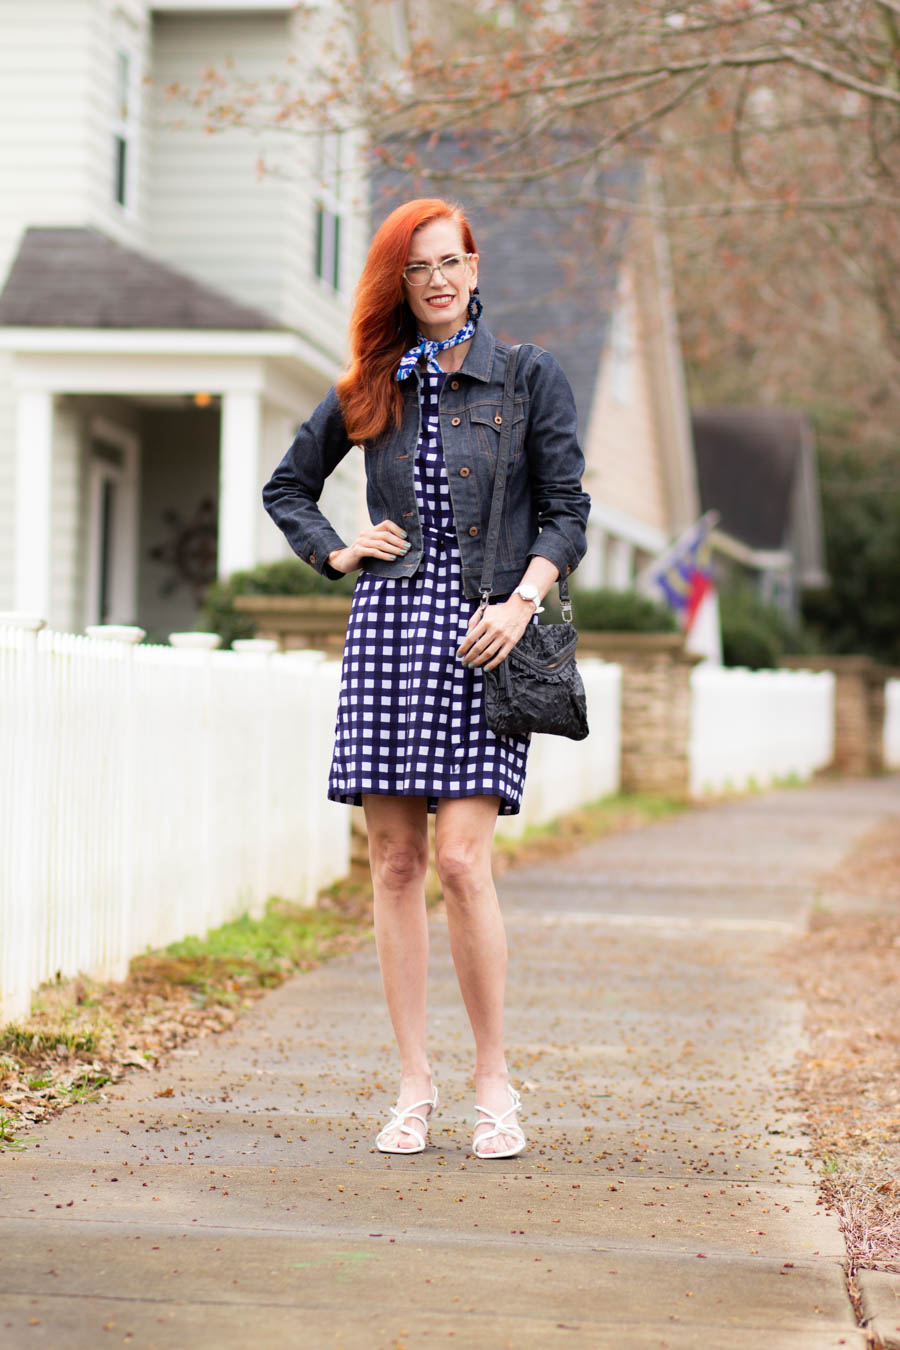 Denim jacket and gingham dress